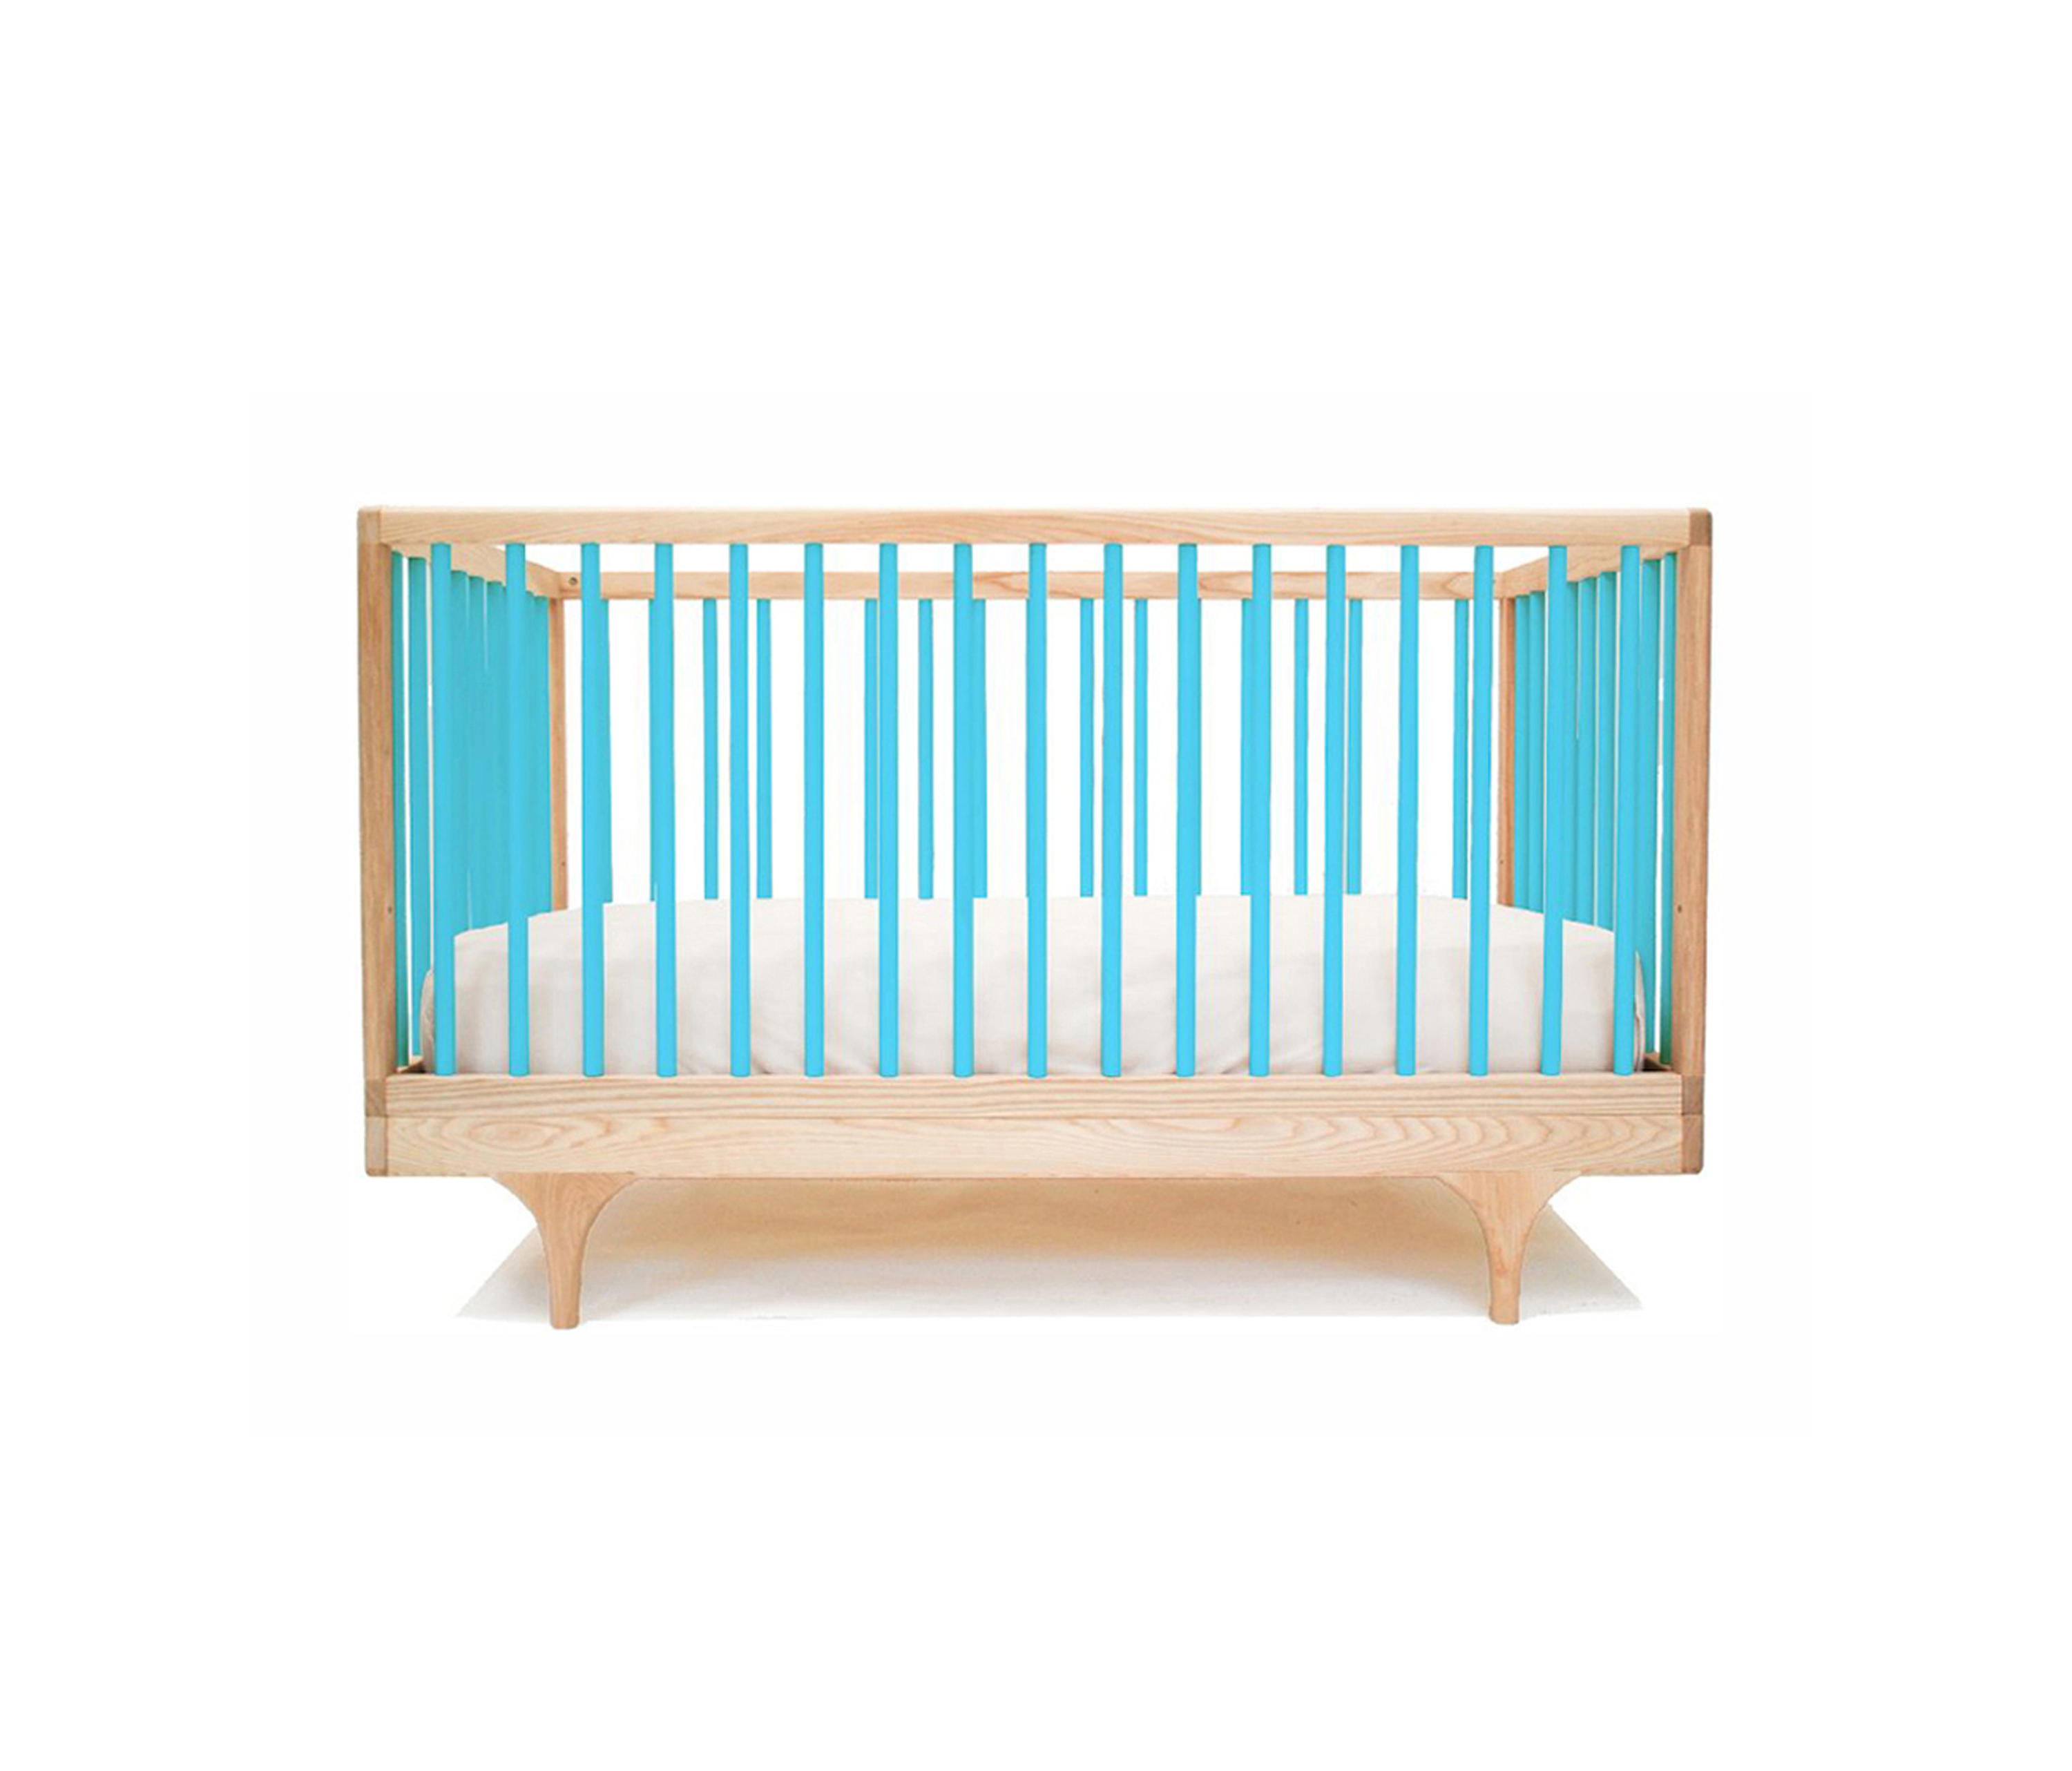 Möbelgeschäfte köln  CARAVAN CRIB - Infant's beds from De Breuyn | Architonic